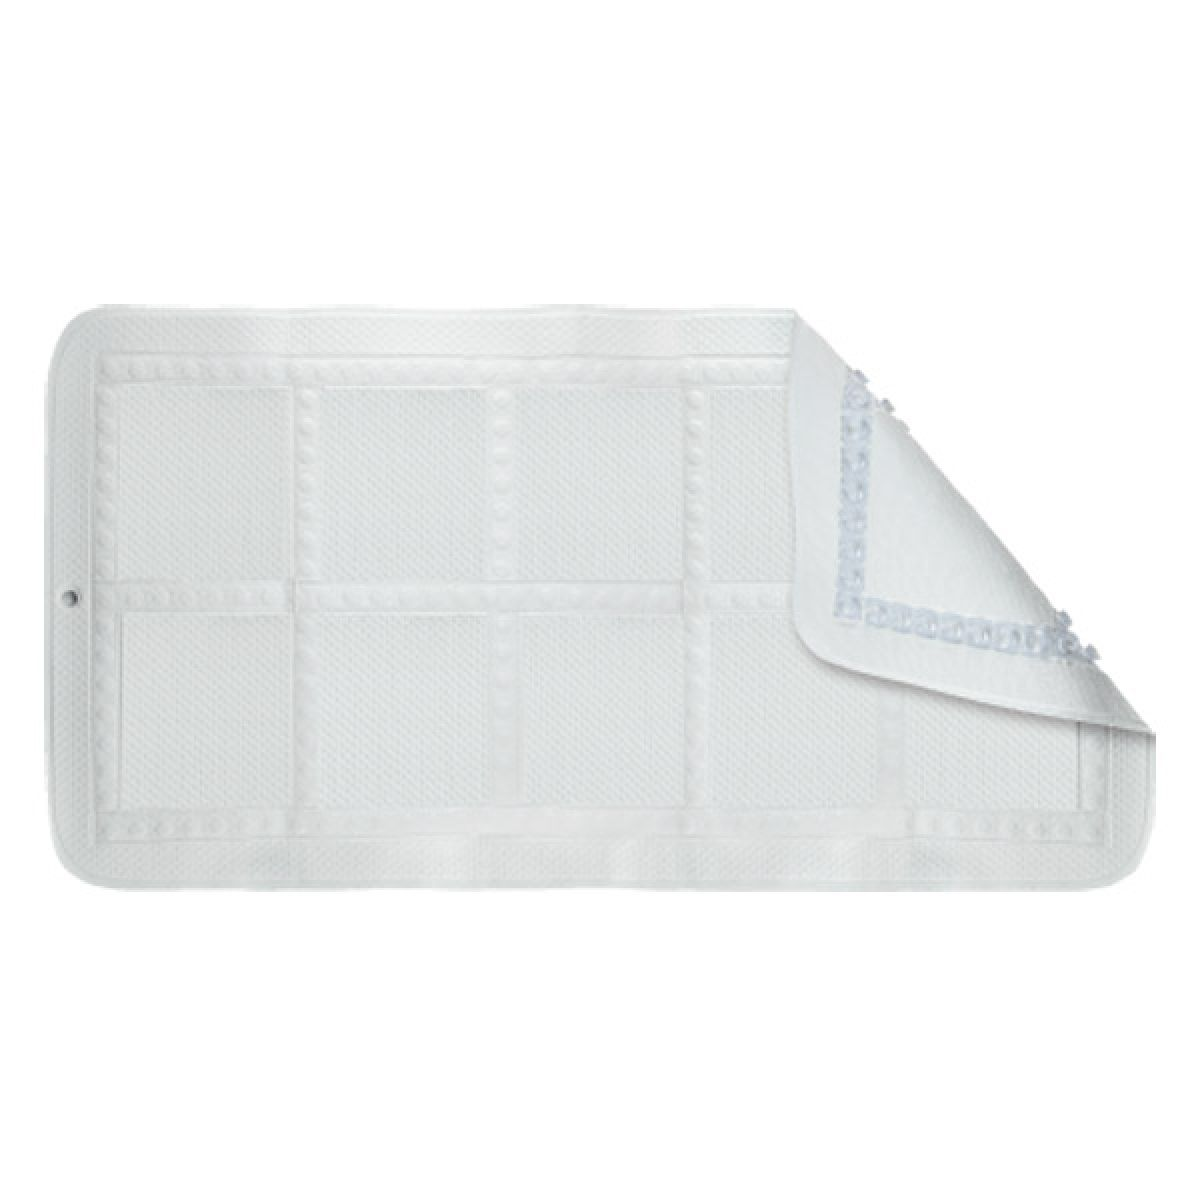 Croydex Hygiene N Clean Croydelle Medium White Bath Mat